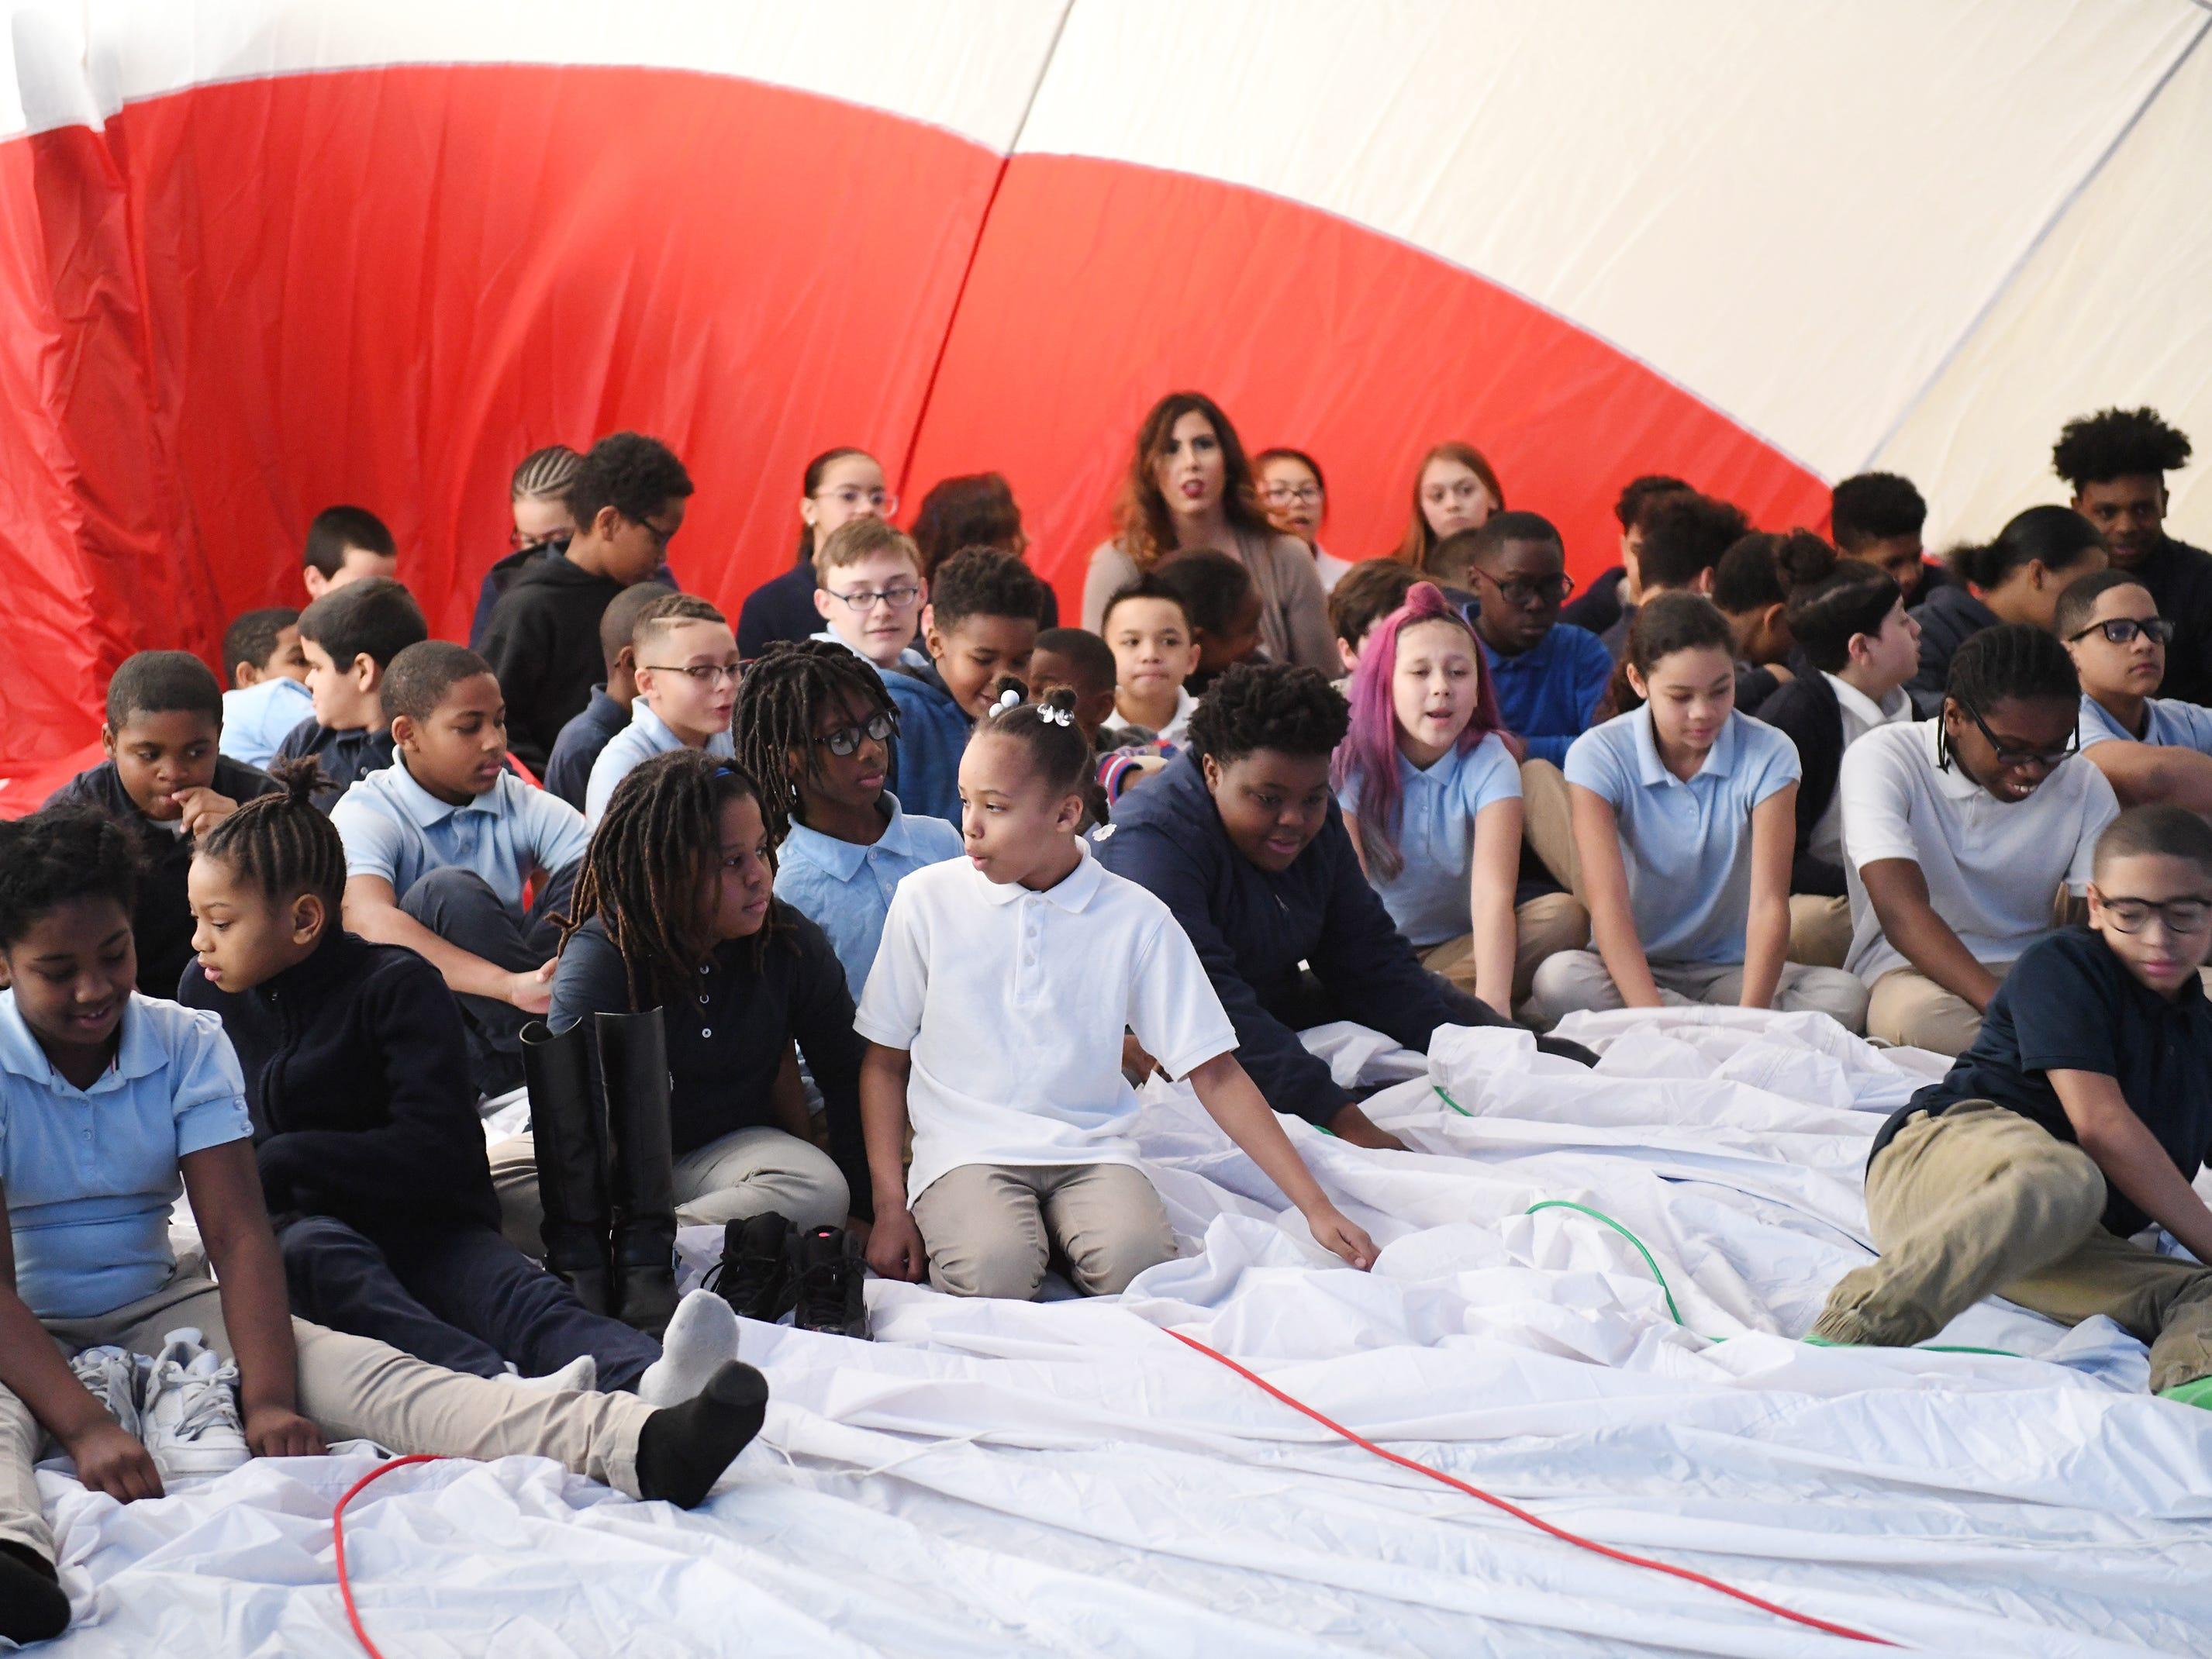 Members of the REMAX Hot Air Balloon Team of New Jersey put on a demonstration inside the Millville Public Charter School on Thursday, Feb. 21, 2019. Students experienced the inside of a filled balloon during the presentation.